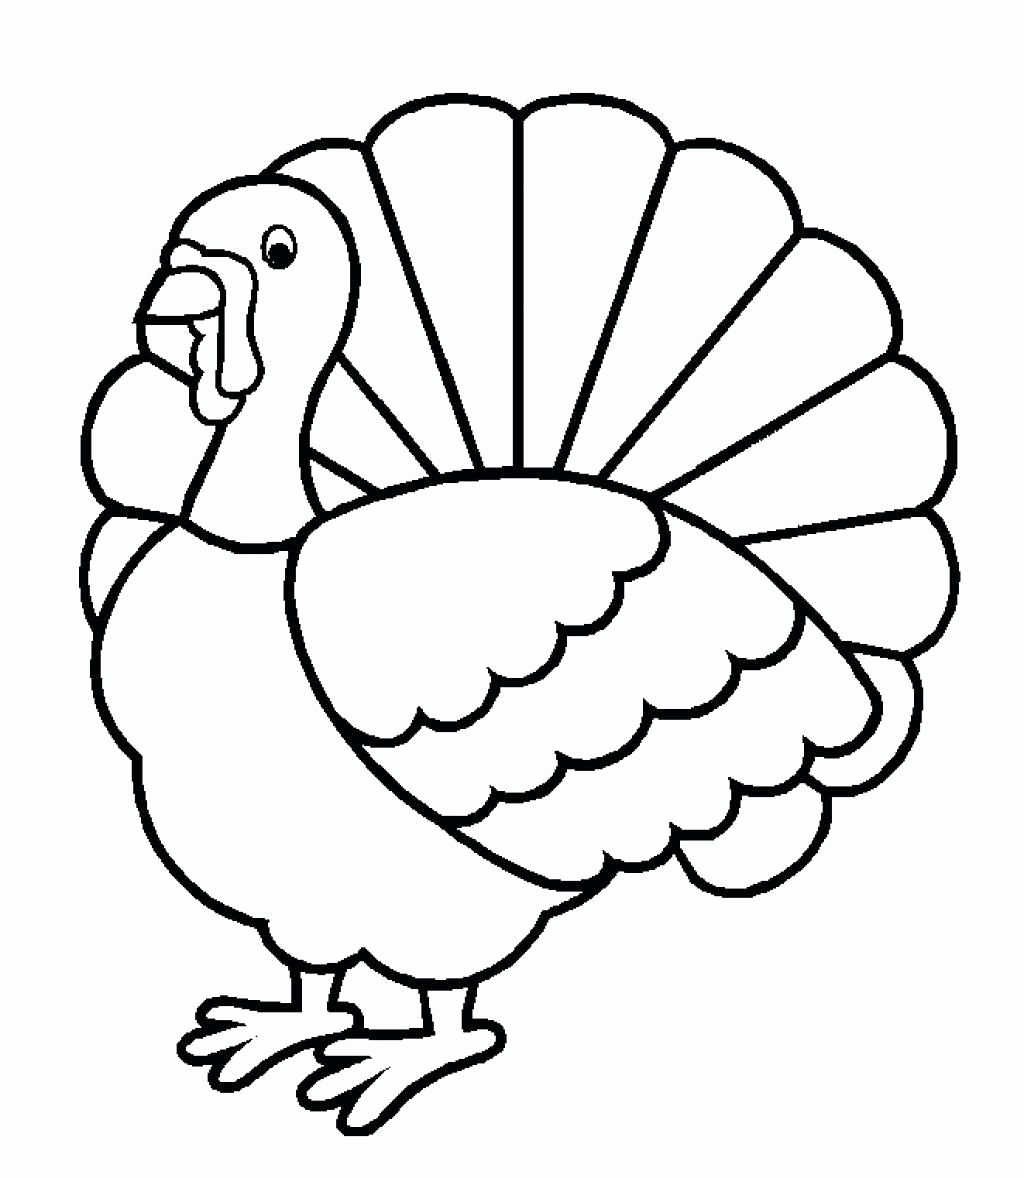 Turkey Feather Coloring Sheet